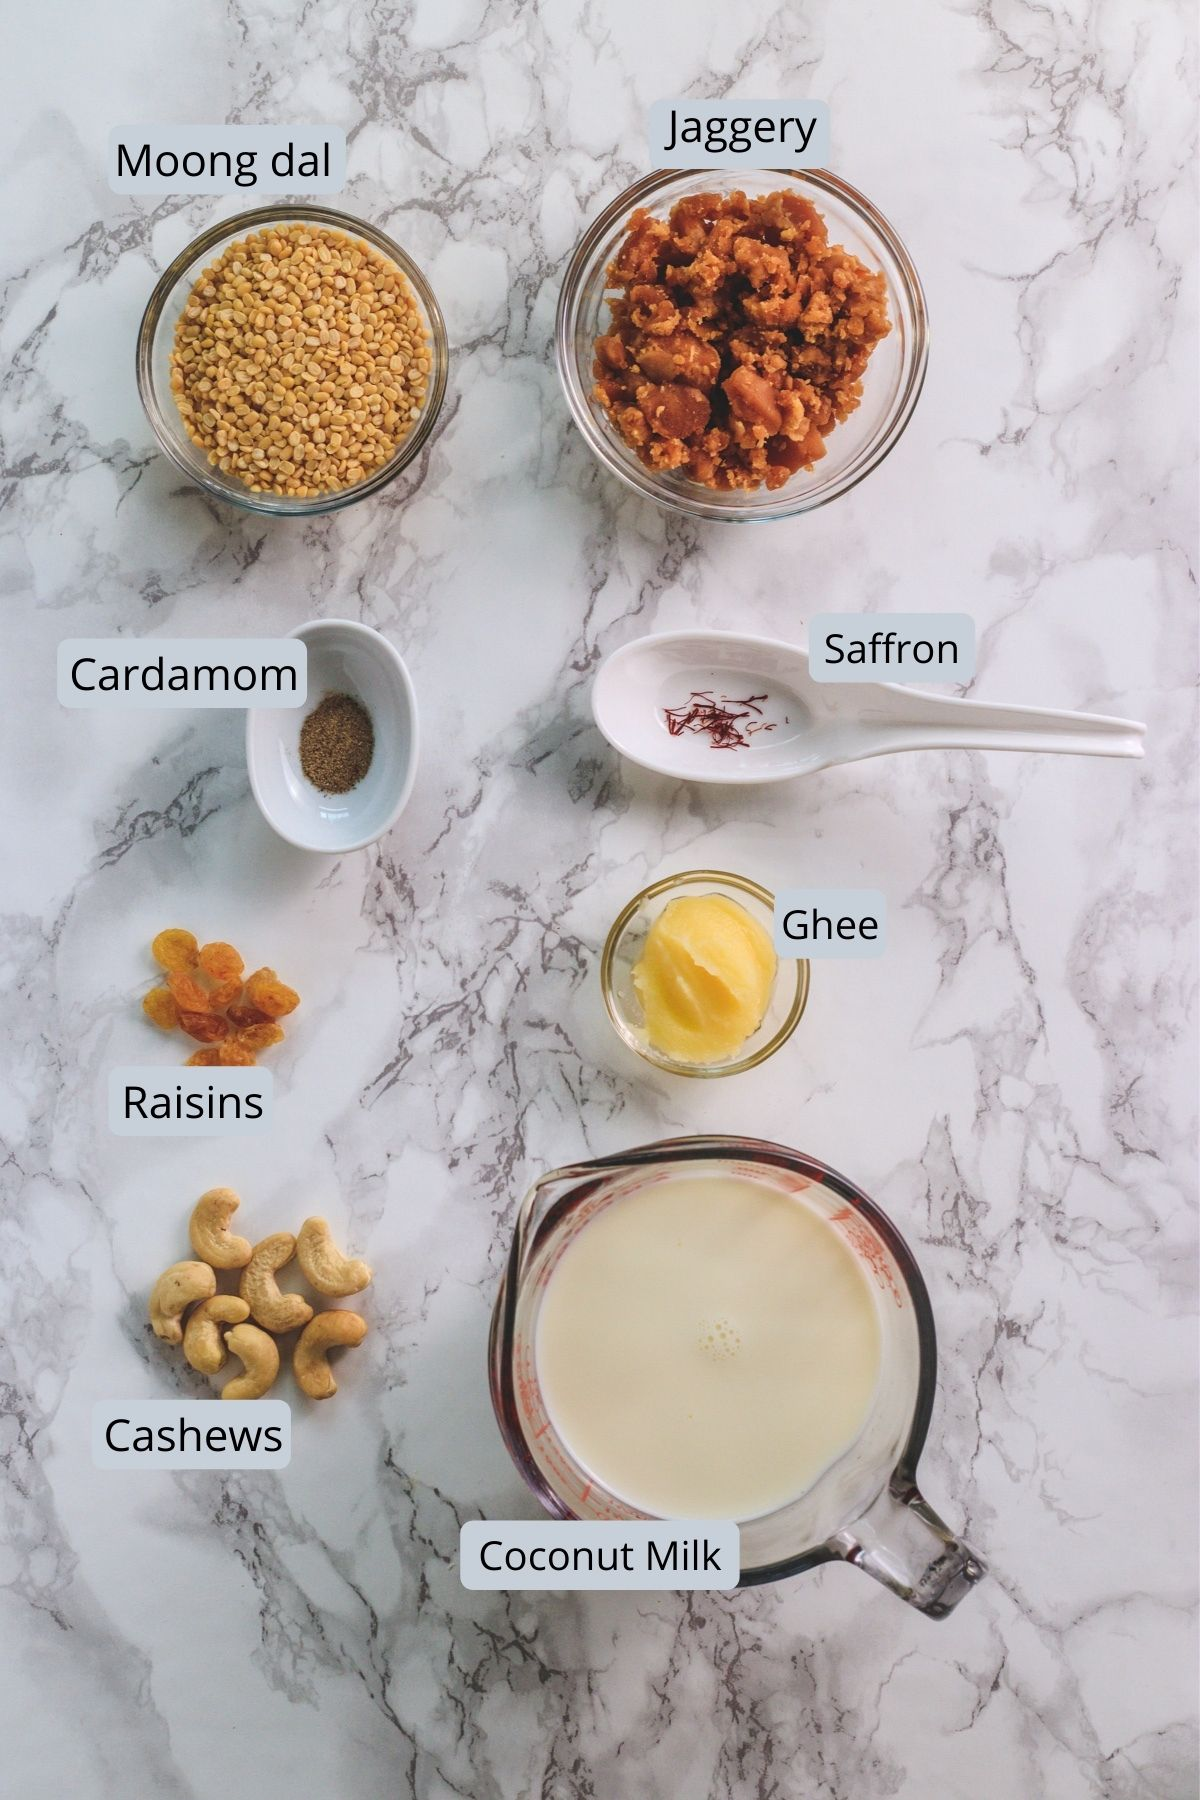 Ingredients used in paruppu payasam includes moong dal, ghee, coconut milk, cashews, raisins, saffron, cardamom